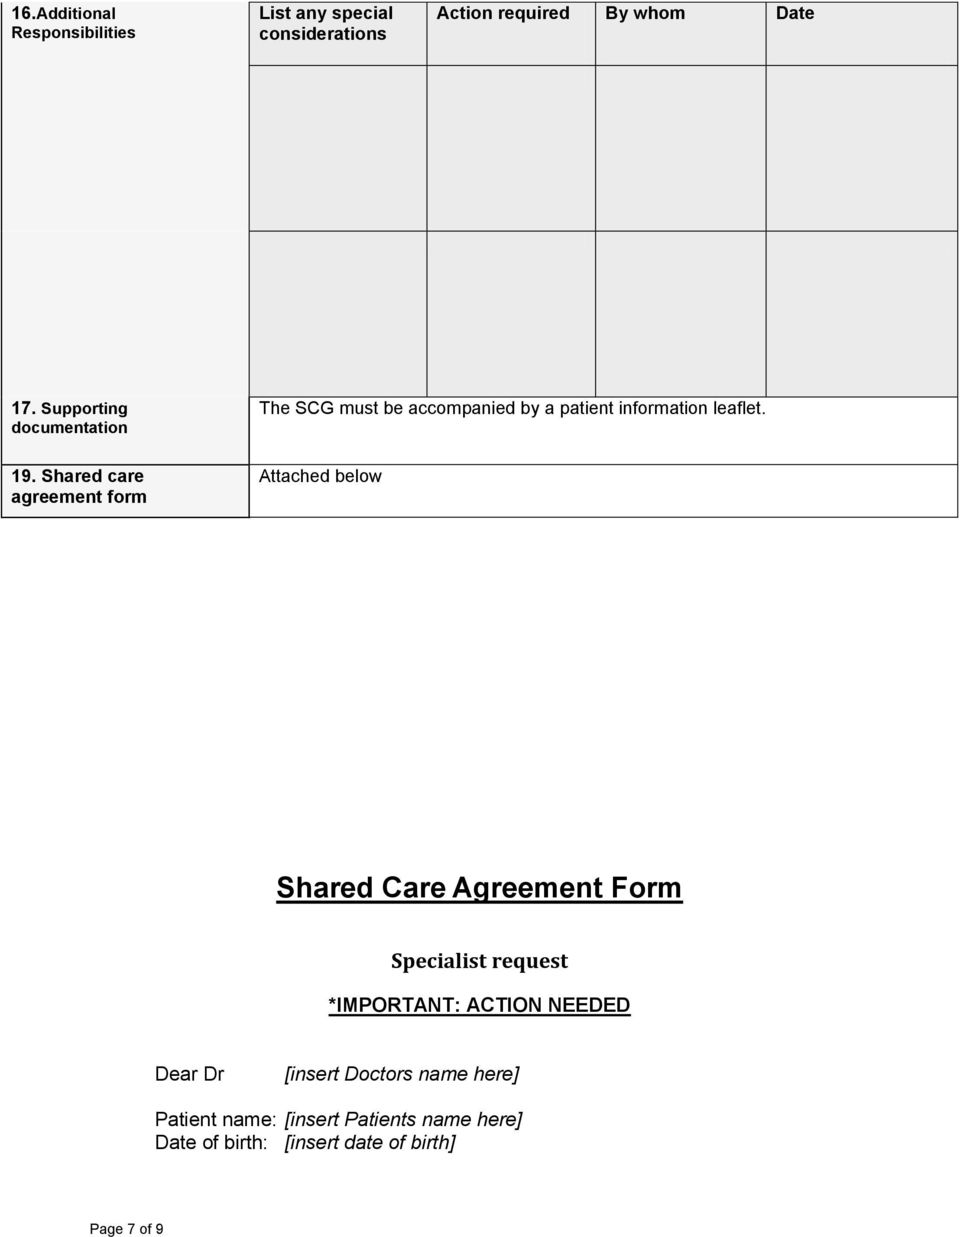 Shared care agreement form Attached below Shared Care Agreement Form Specialist request *IMPORTANT: ACTION